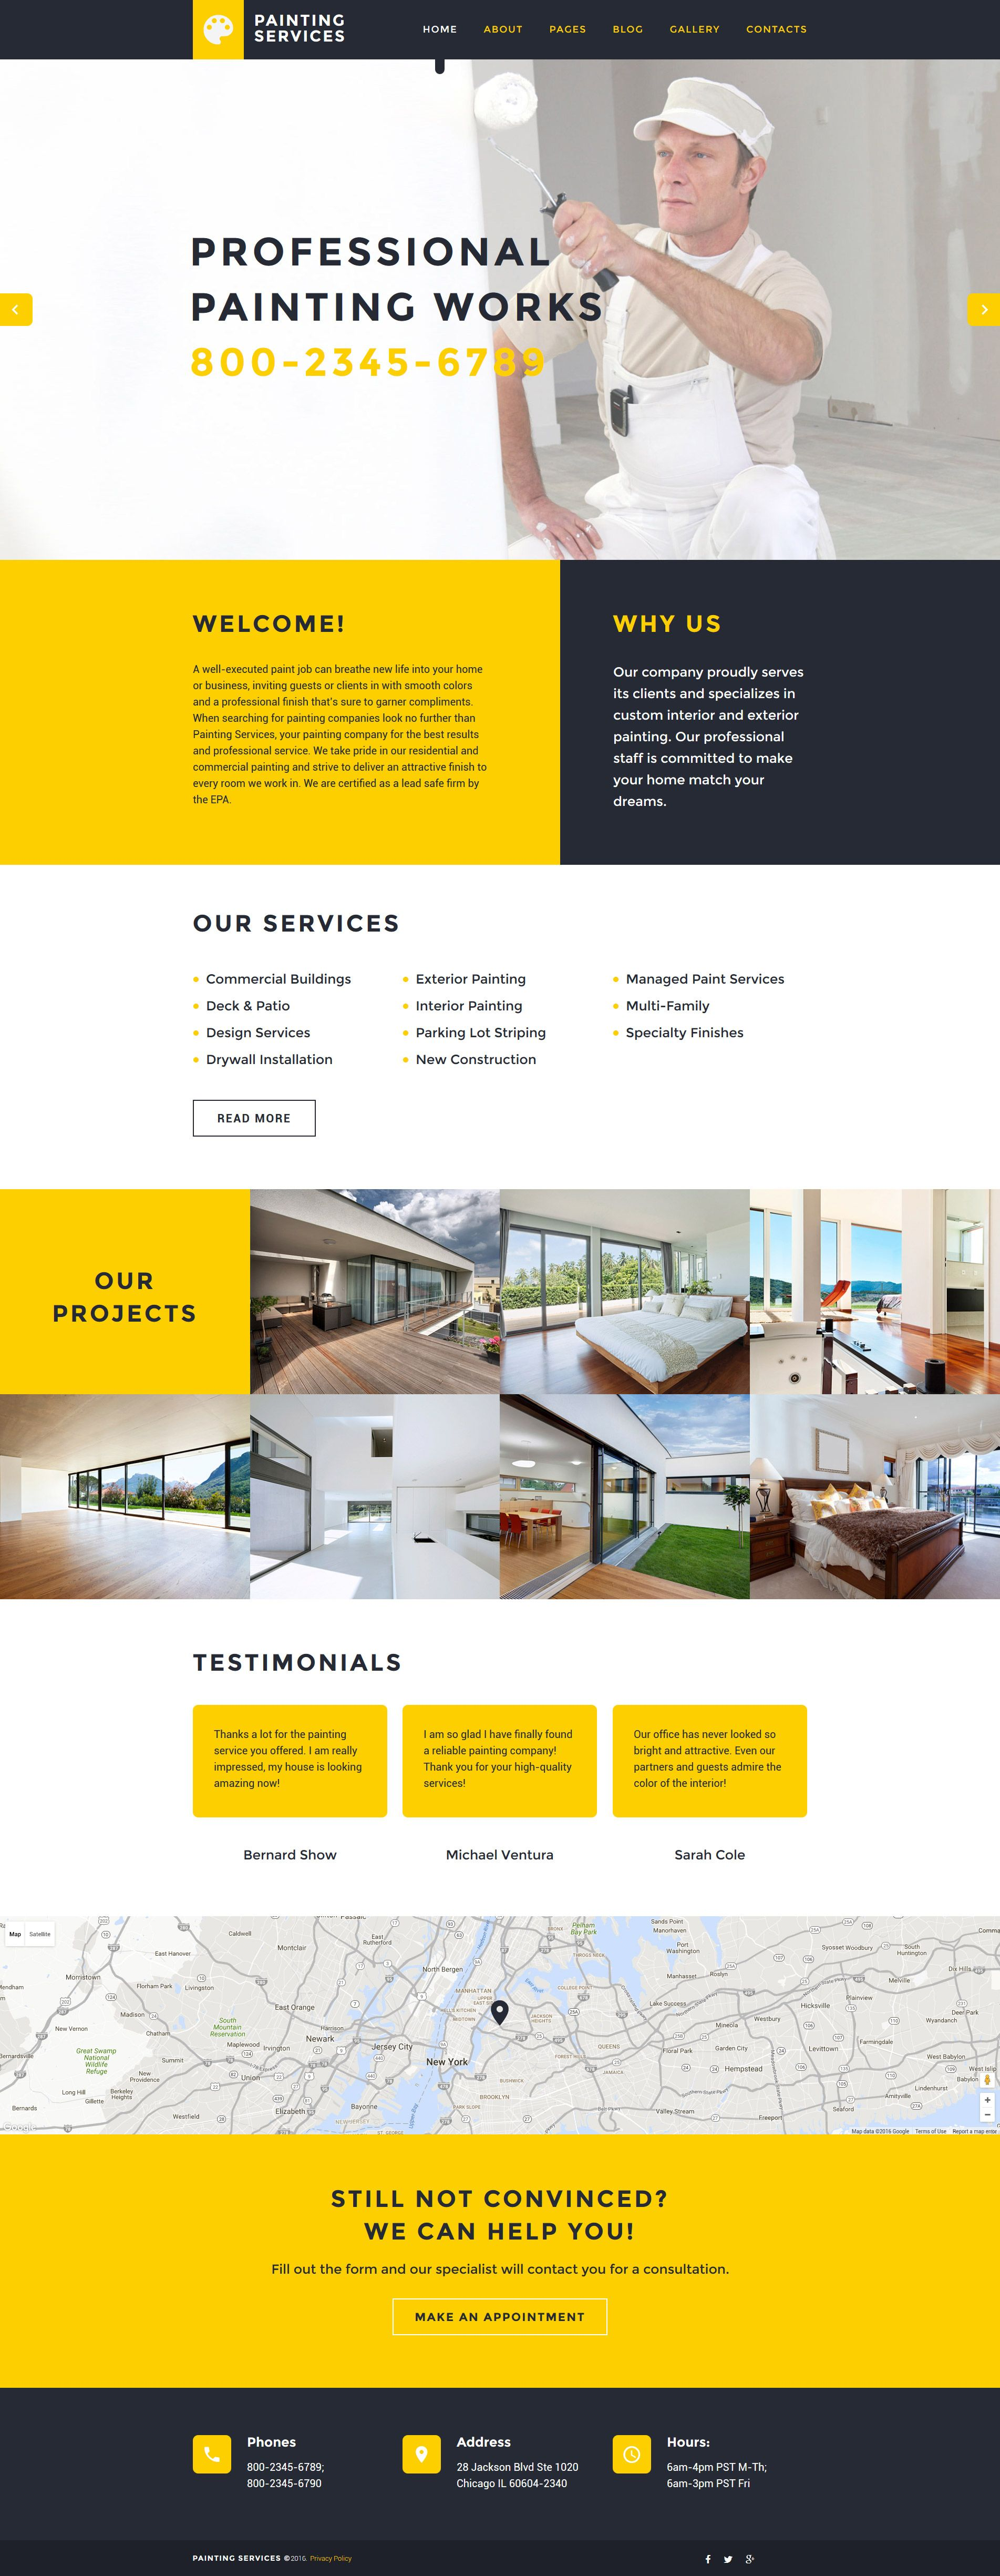 Painting Services Joomla Template Http Www Templatemonster Com Joomla Templates Painting Services Joomla Template 58266 Html